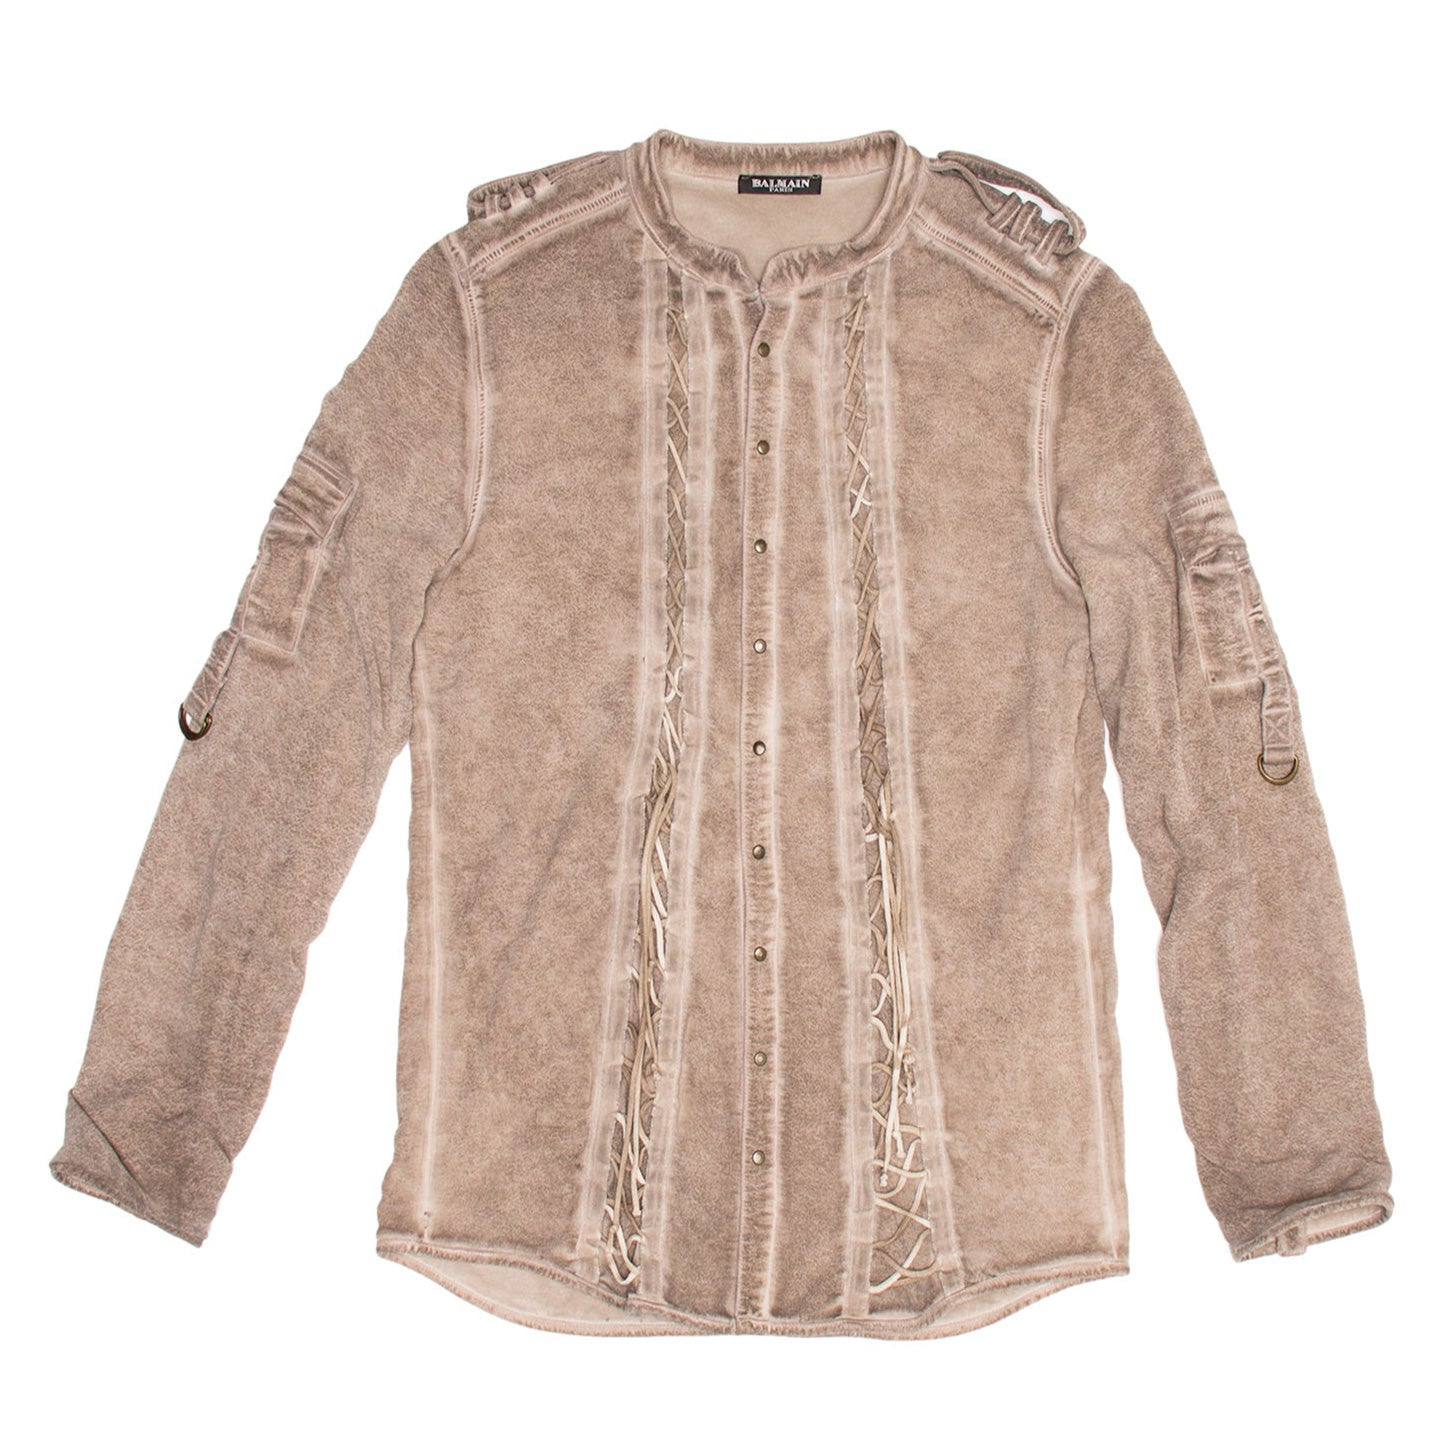 Find an authentic preowned Balmain Taupe Jersey & Chiffon Top size 40 (French) at BunnyJack, where a portion of every sale goes to charity.